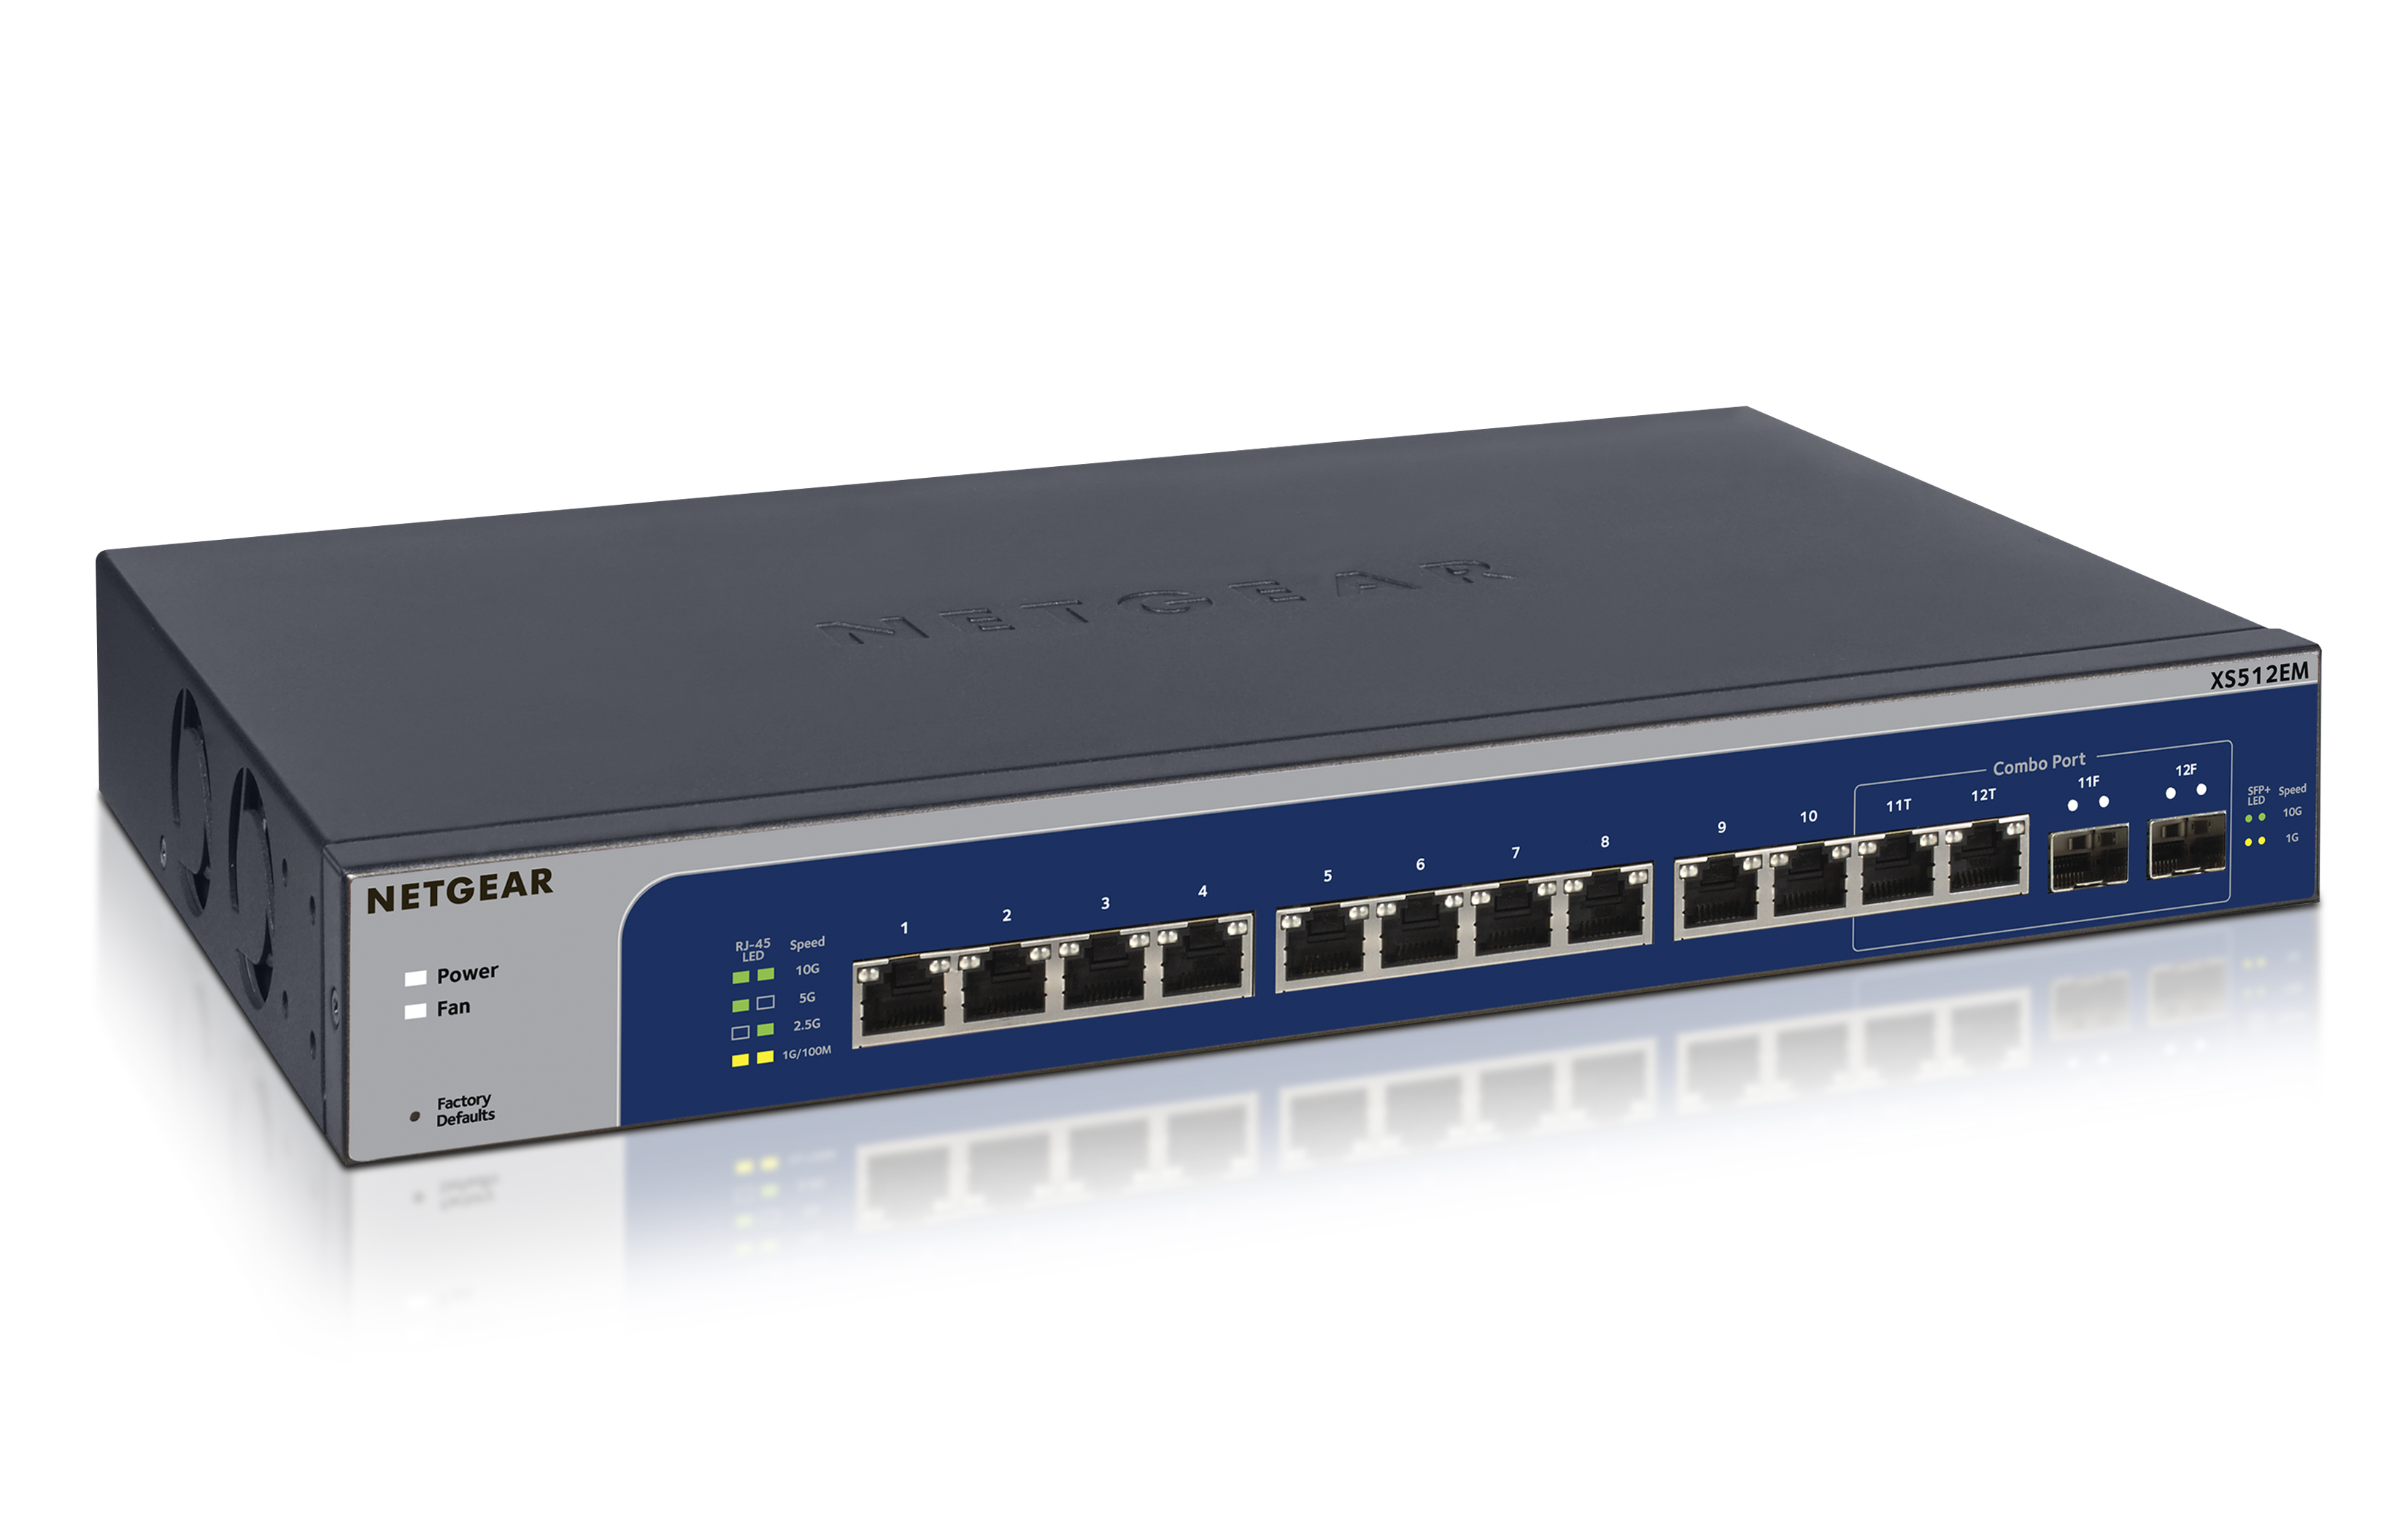 Multi Gig 2018 Press Releases About Us Netgear Wiring A Network Switch Xs512em 12 Port 10 Gigabit Ethernet Smart Managed Plus With 2 Sfp Ports Desktop And Rackmount 89999